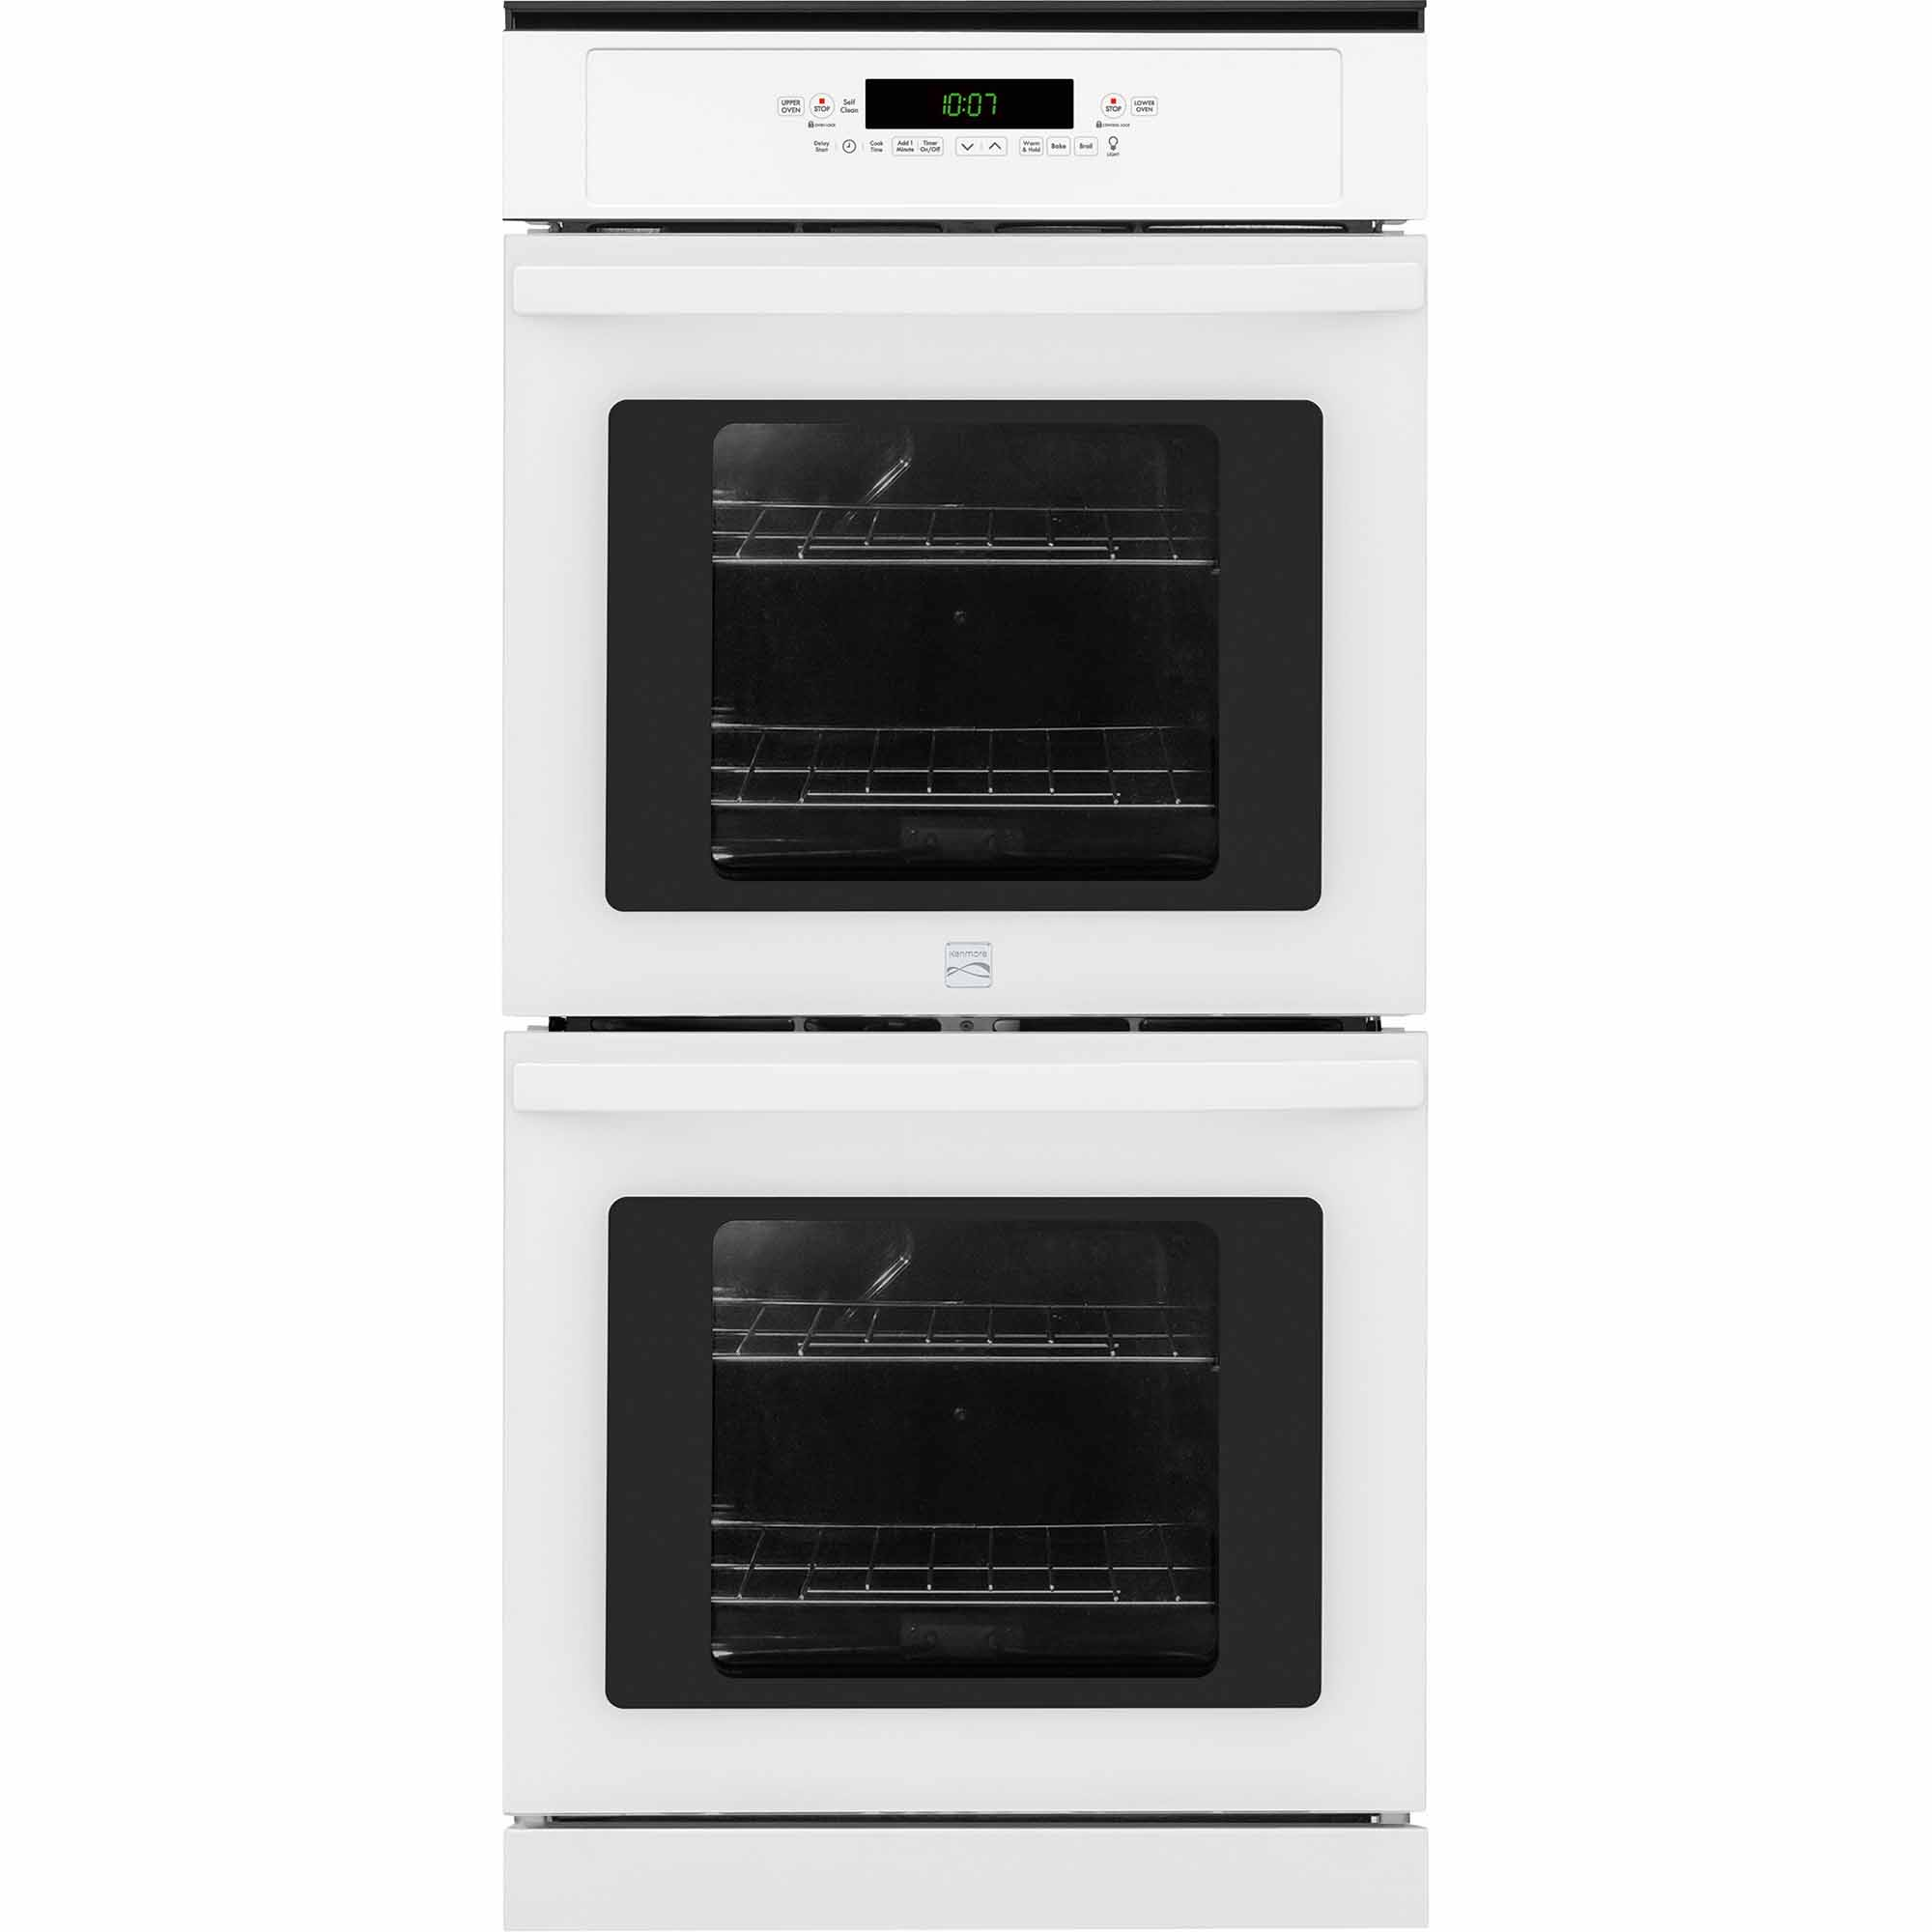 Kenmore 40252 24 Manual Clean Electric Double Wall Oven - White